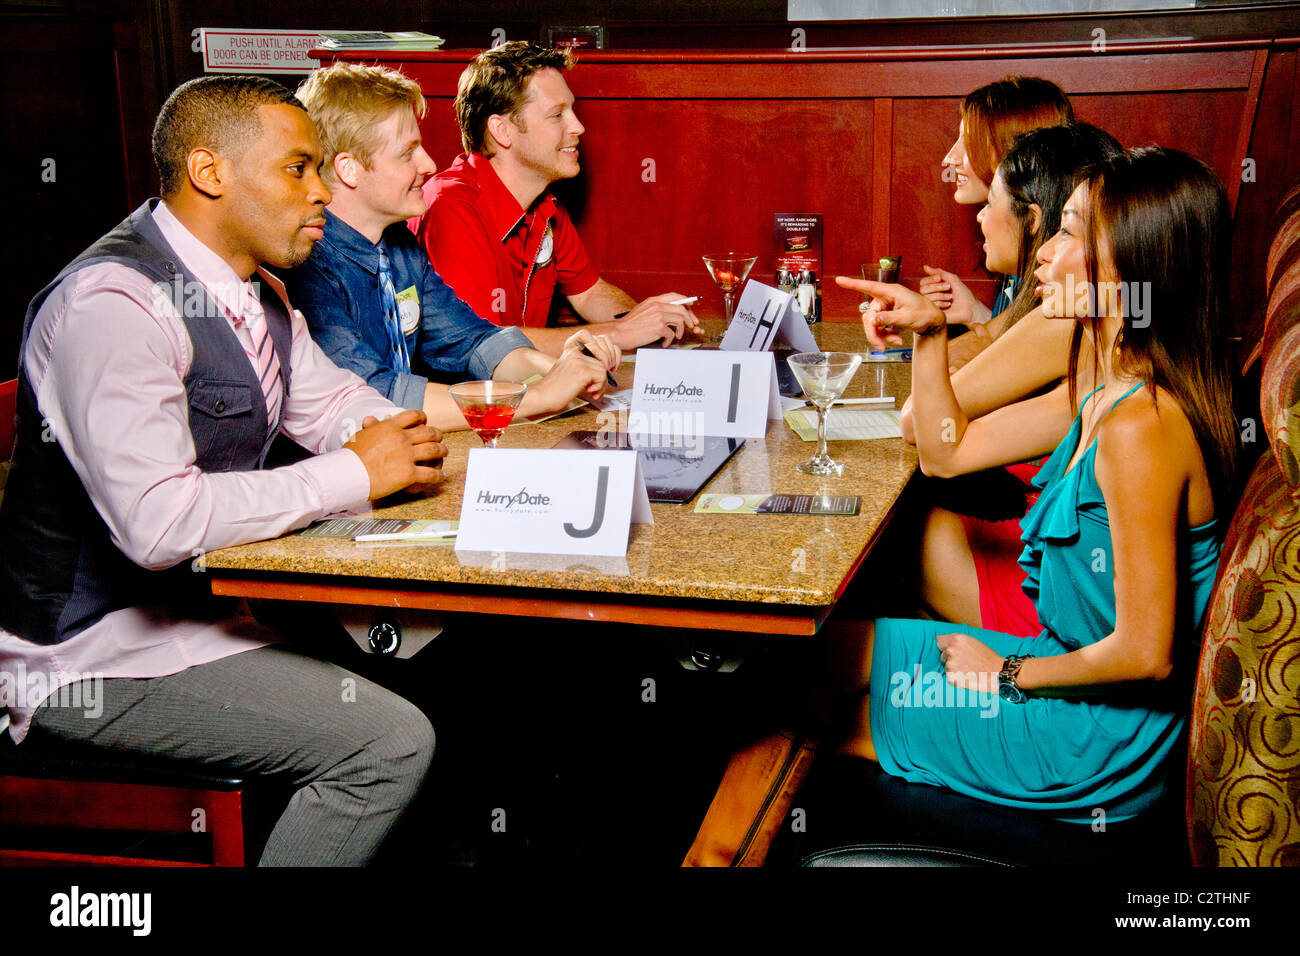 speed dating nyc african american singles (718)757-6933 we run the most organized nyc speed dating and nyc singles events proof of age required 50+ engaged couples.